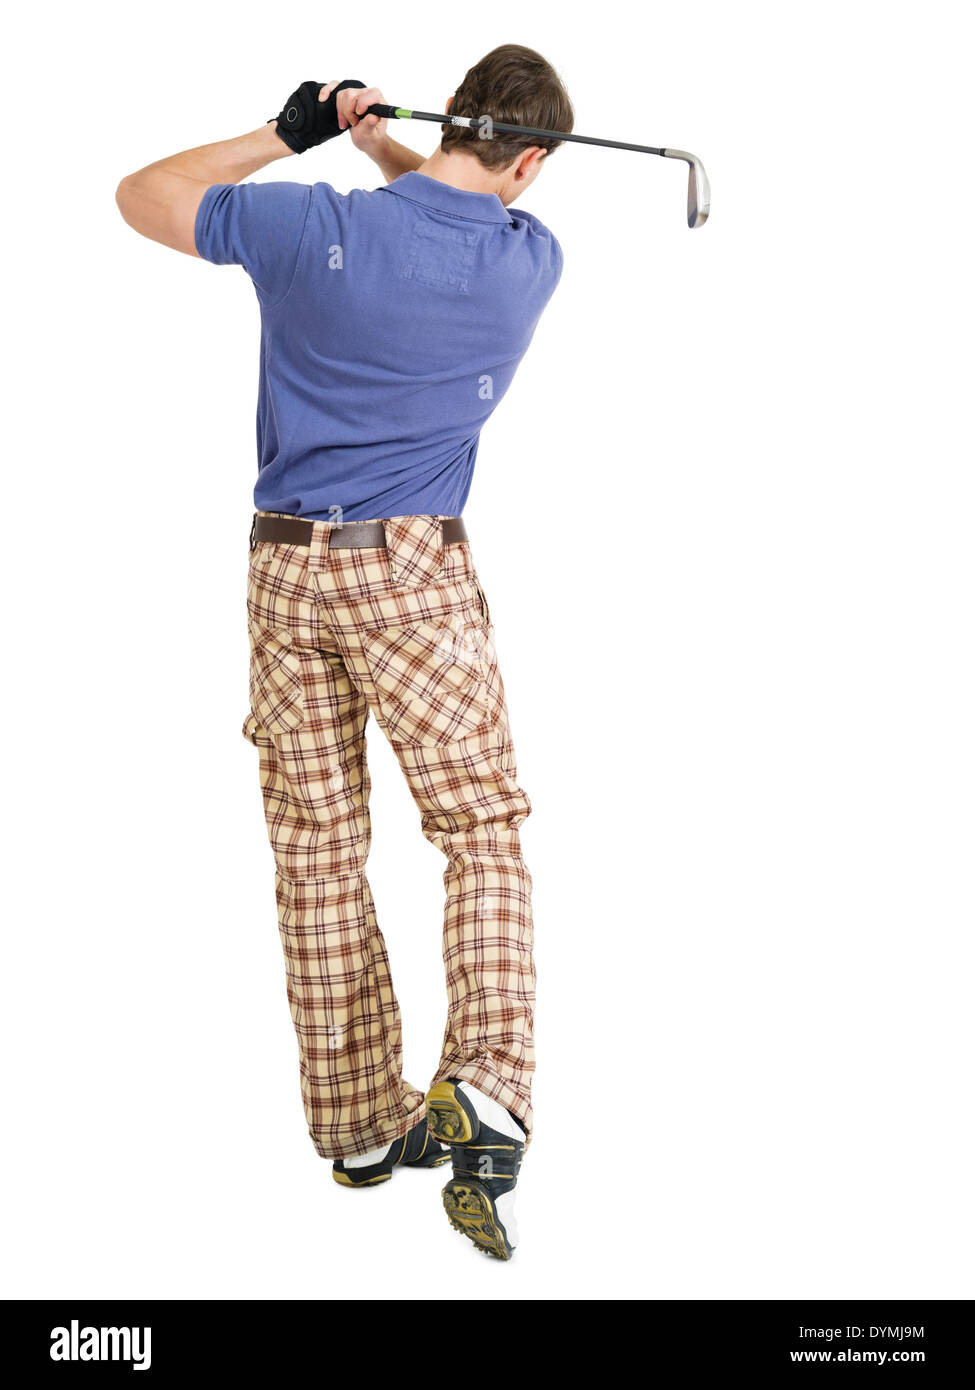 Photo of a male golfer in his late twenties finishing his swing with a wedge. - Stock Image